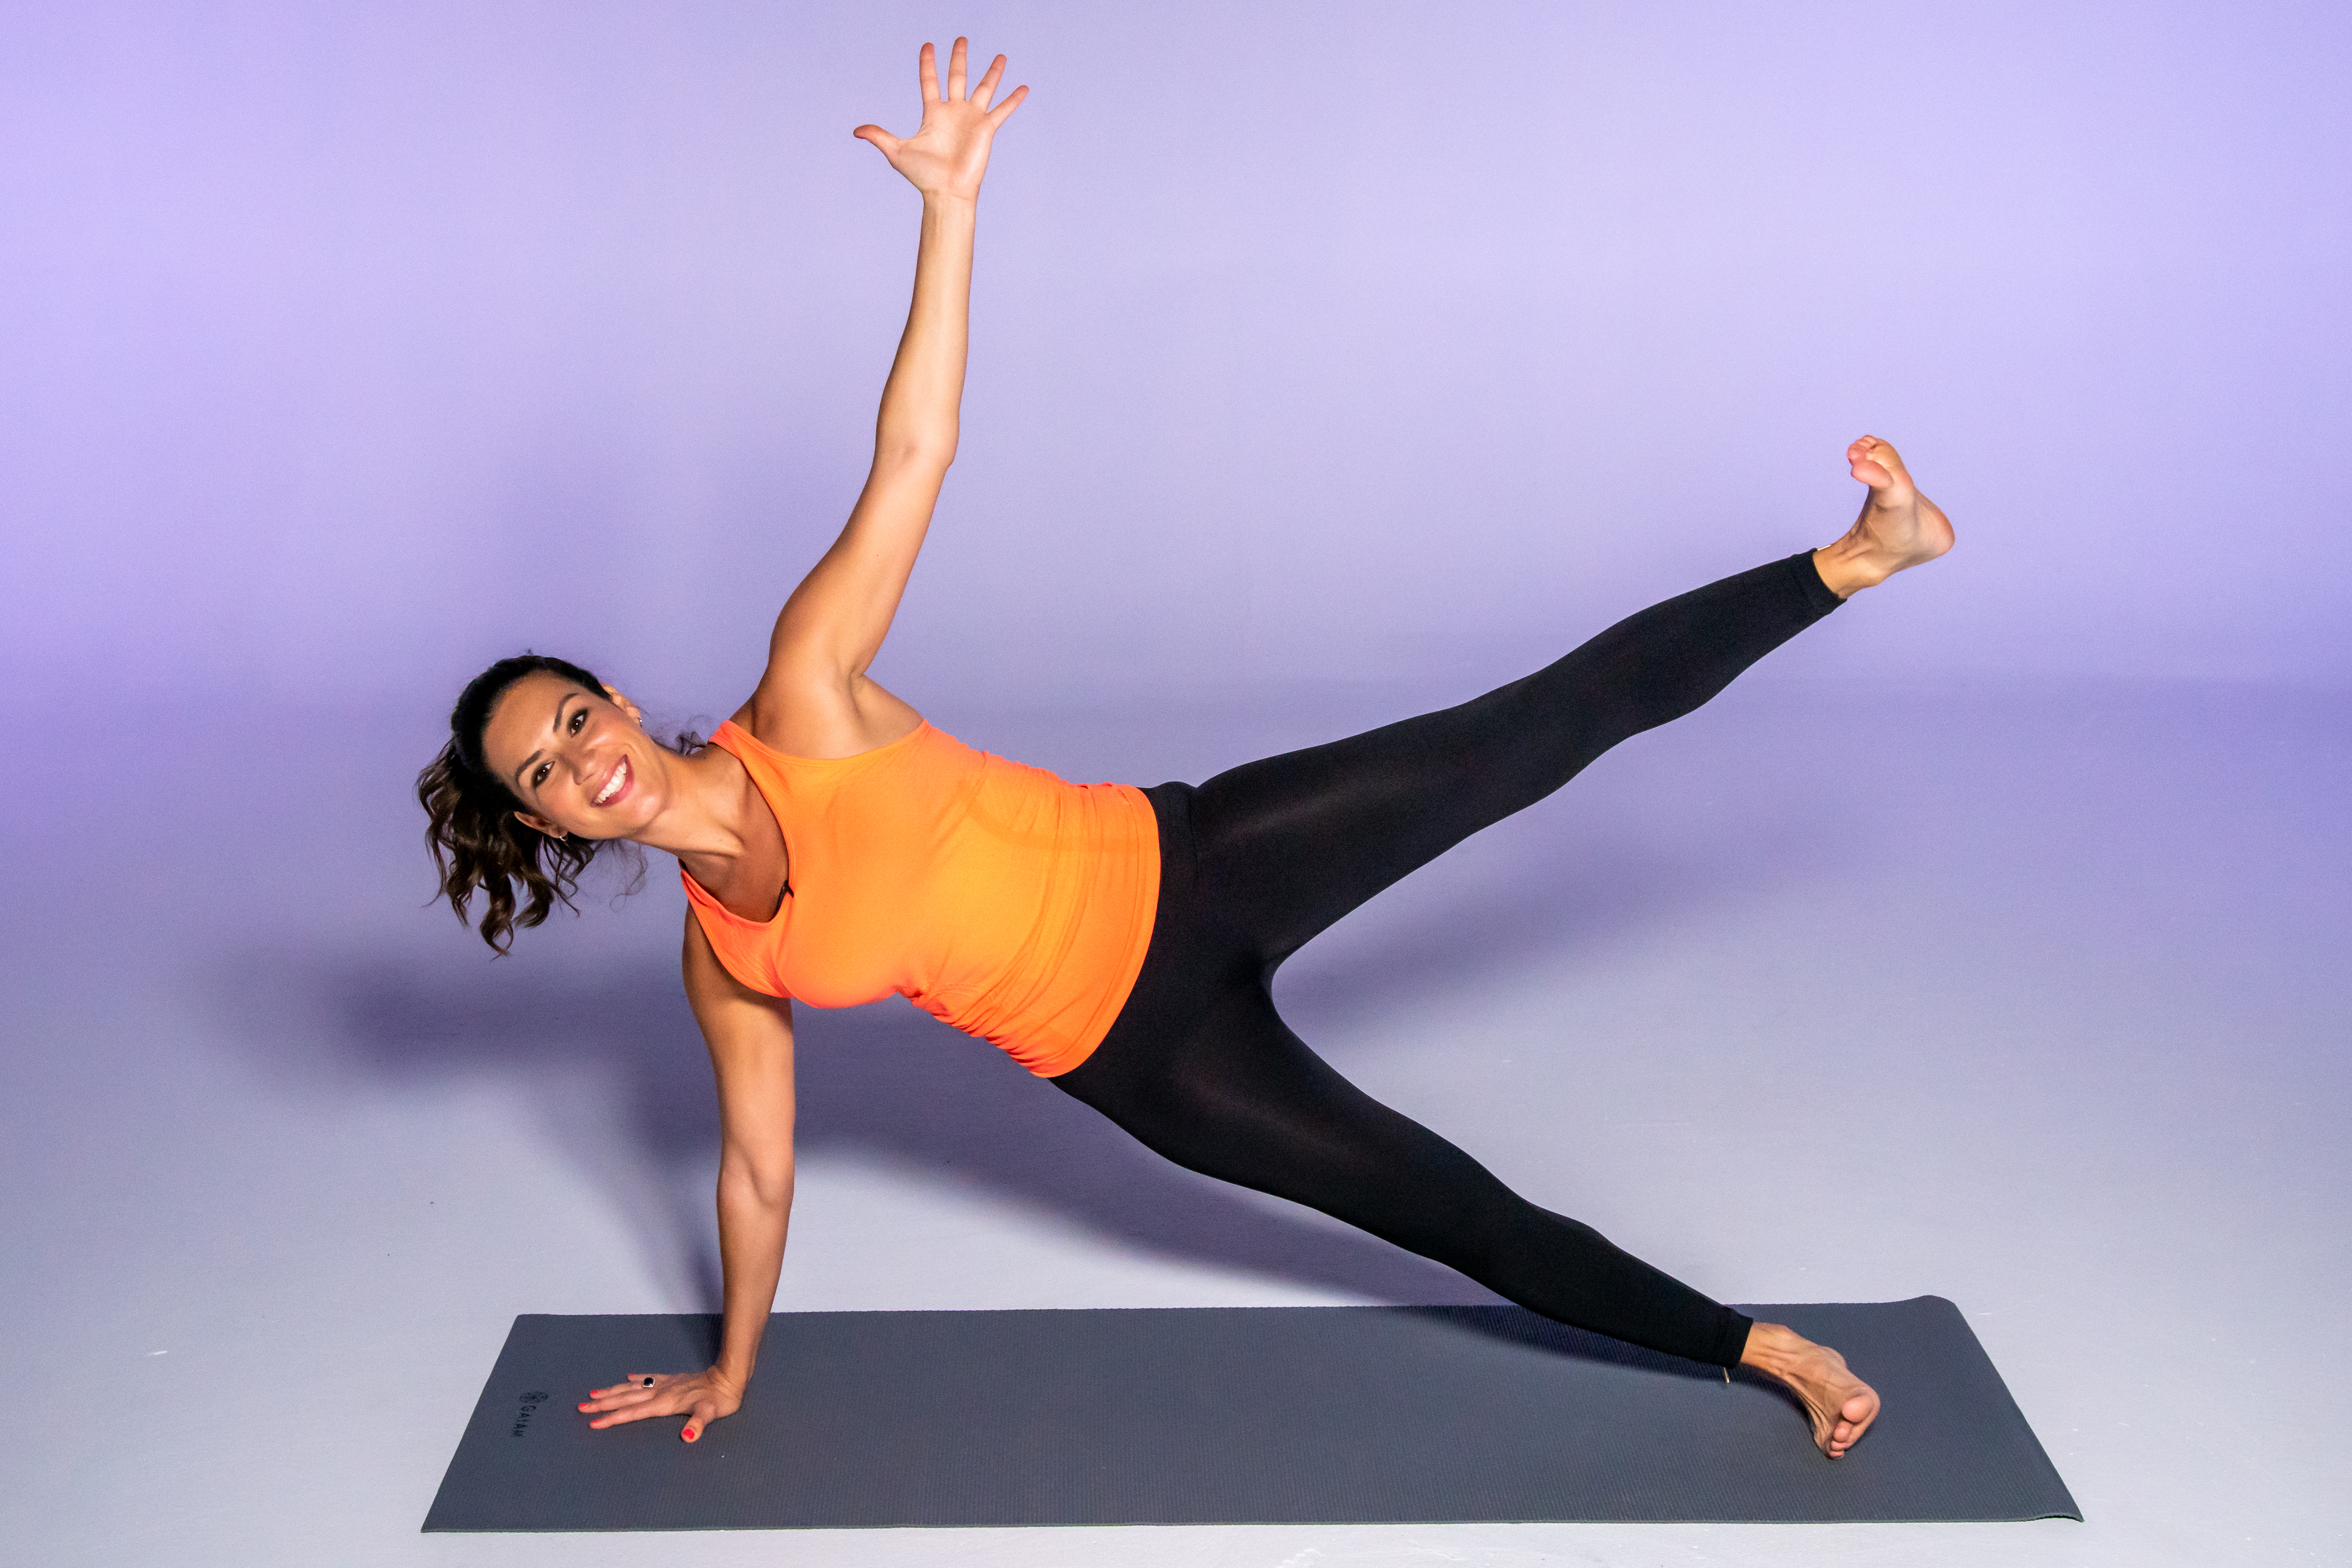 Stephanie Mansour demonstrates a side plank with side leg lift: With both hands on the ground, turn to the left and then lift the left arm up towards the ceiling. Repeat the same thing on the other side side.